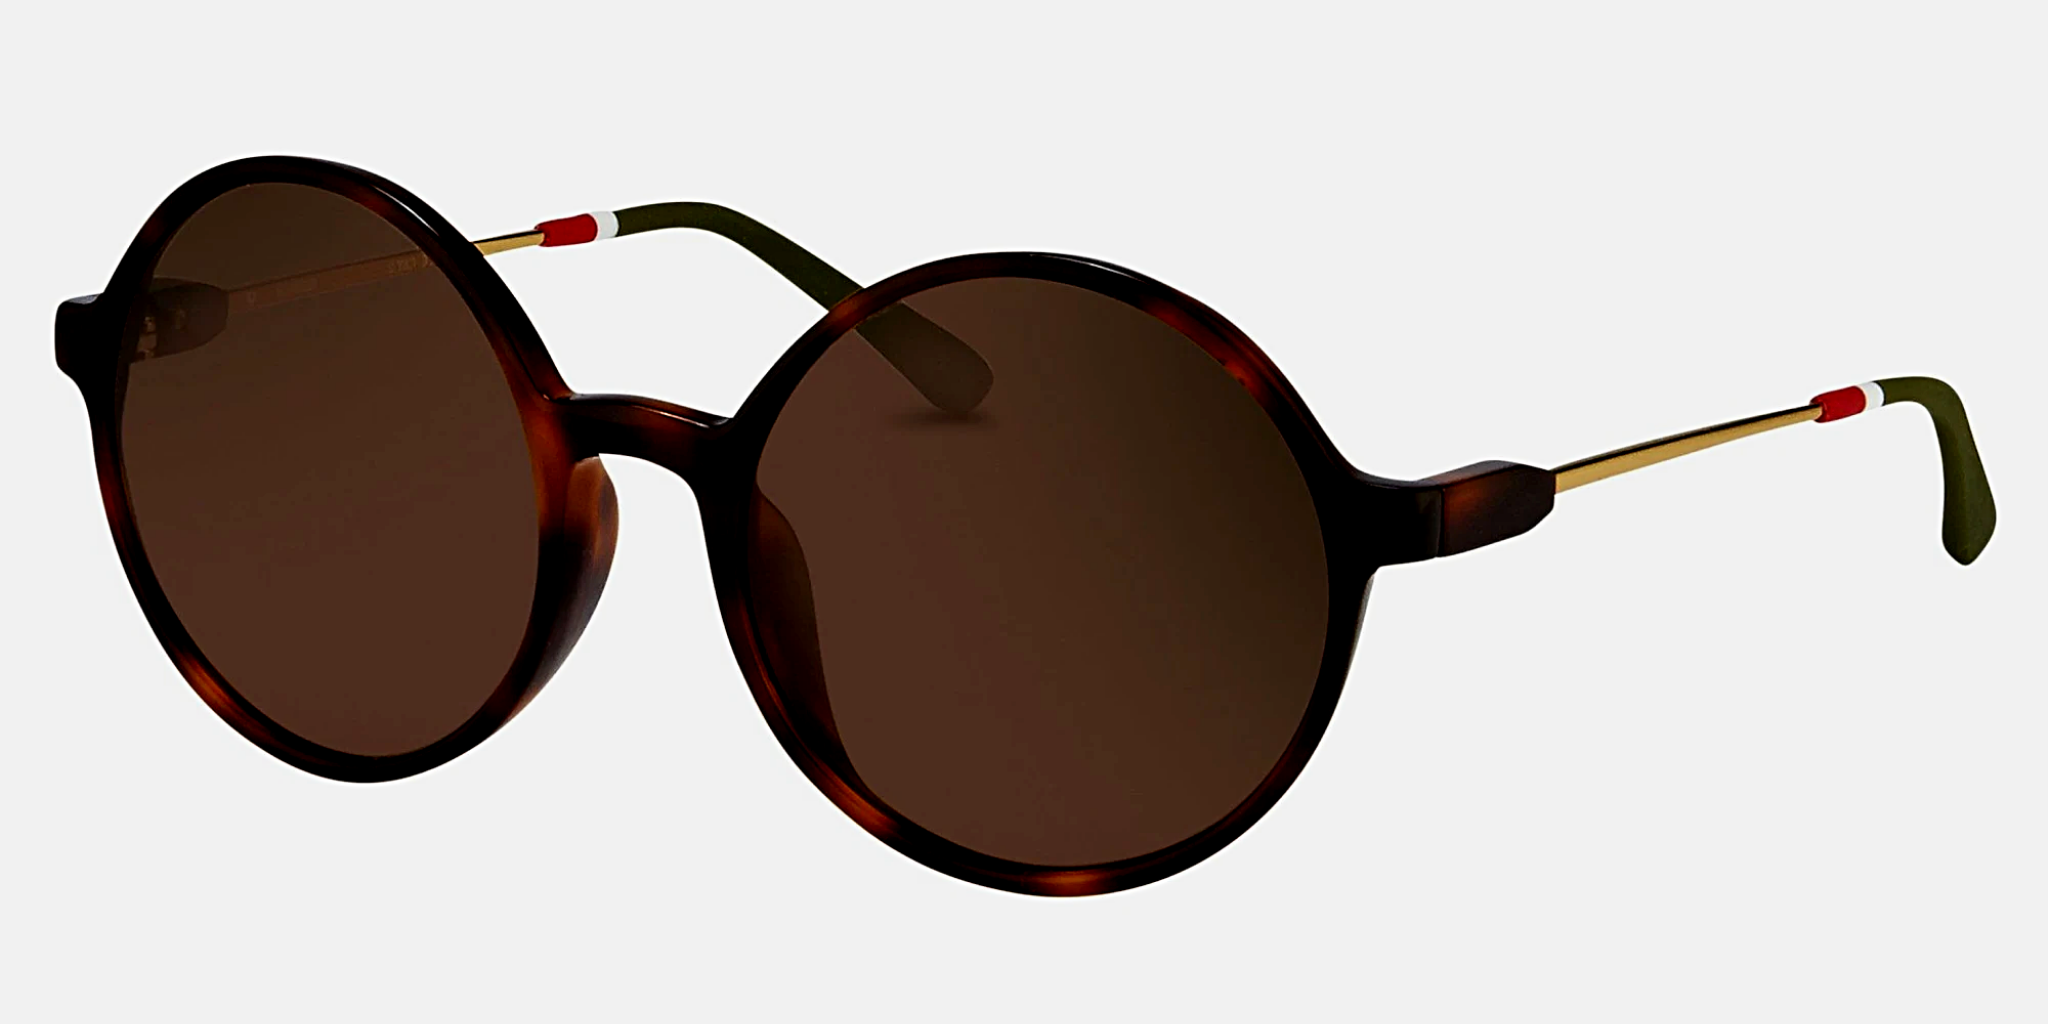 Orlebar Brown Sunglasses Round Tortoise Shell and Brown